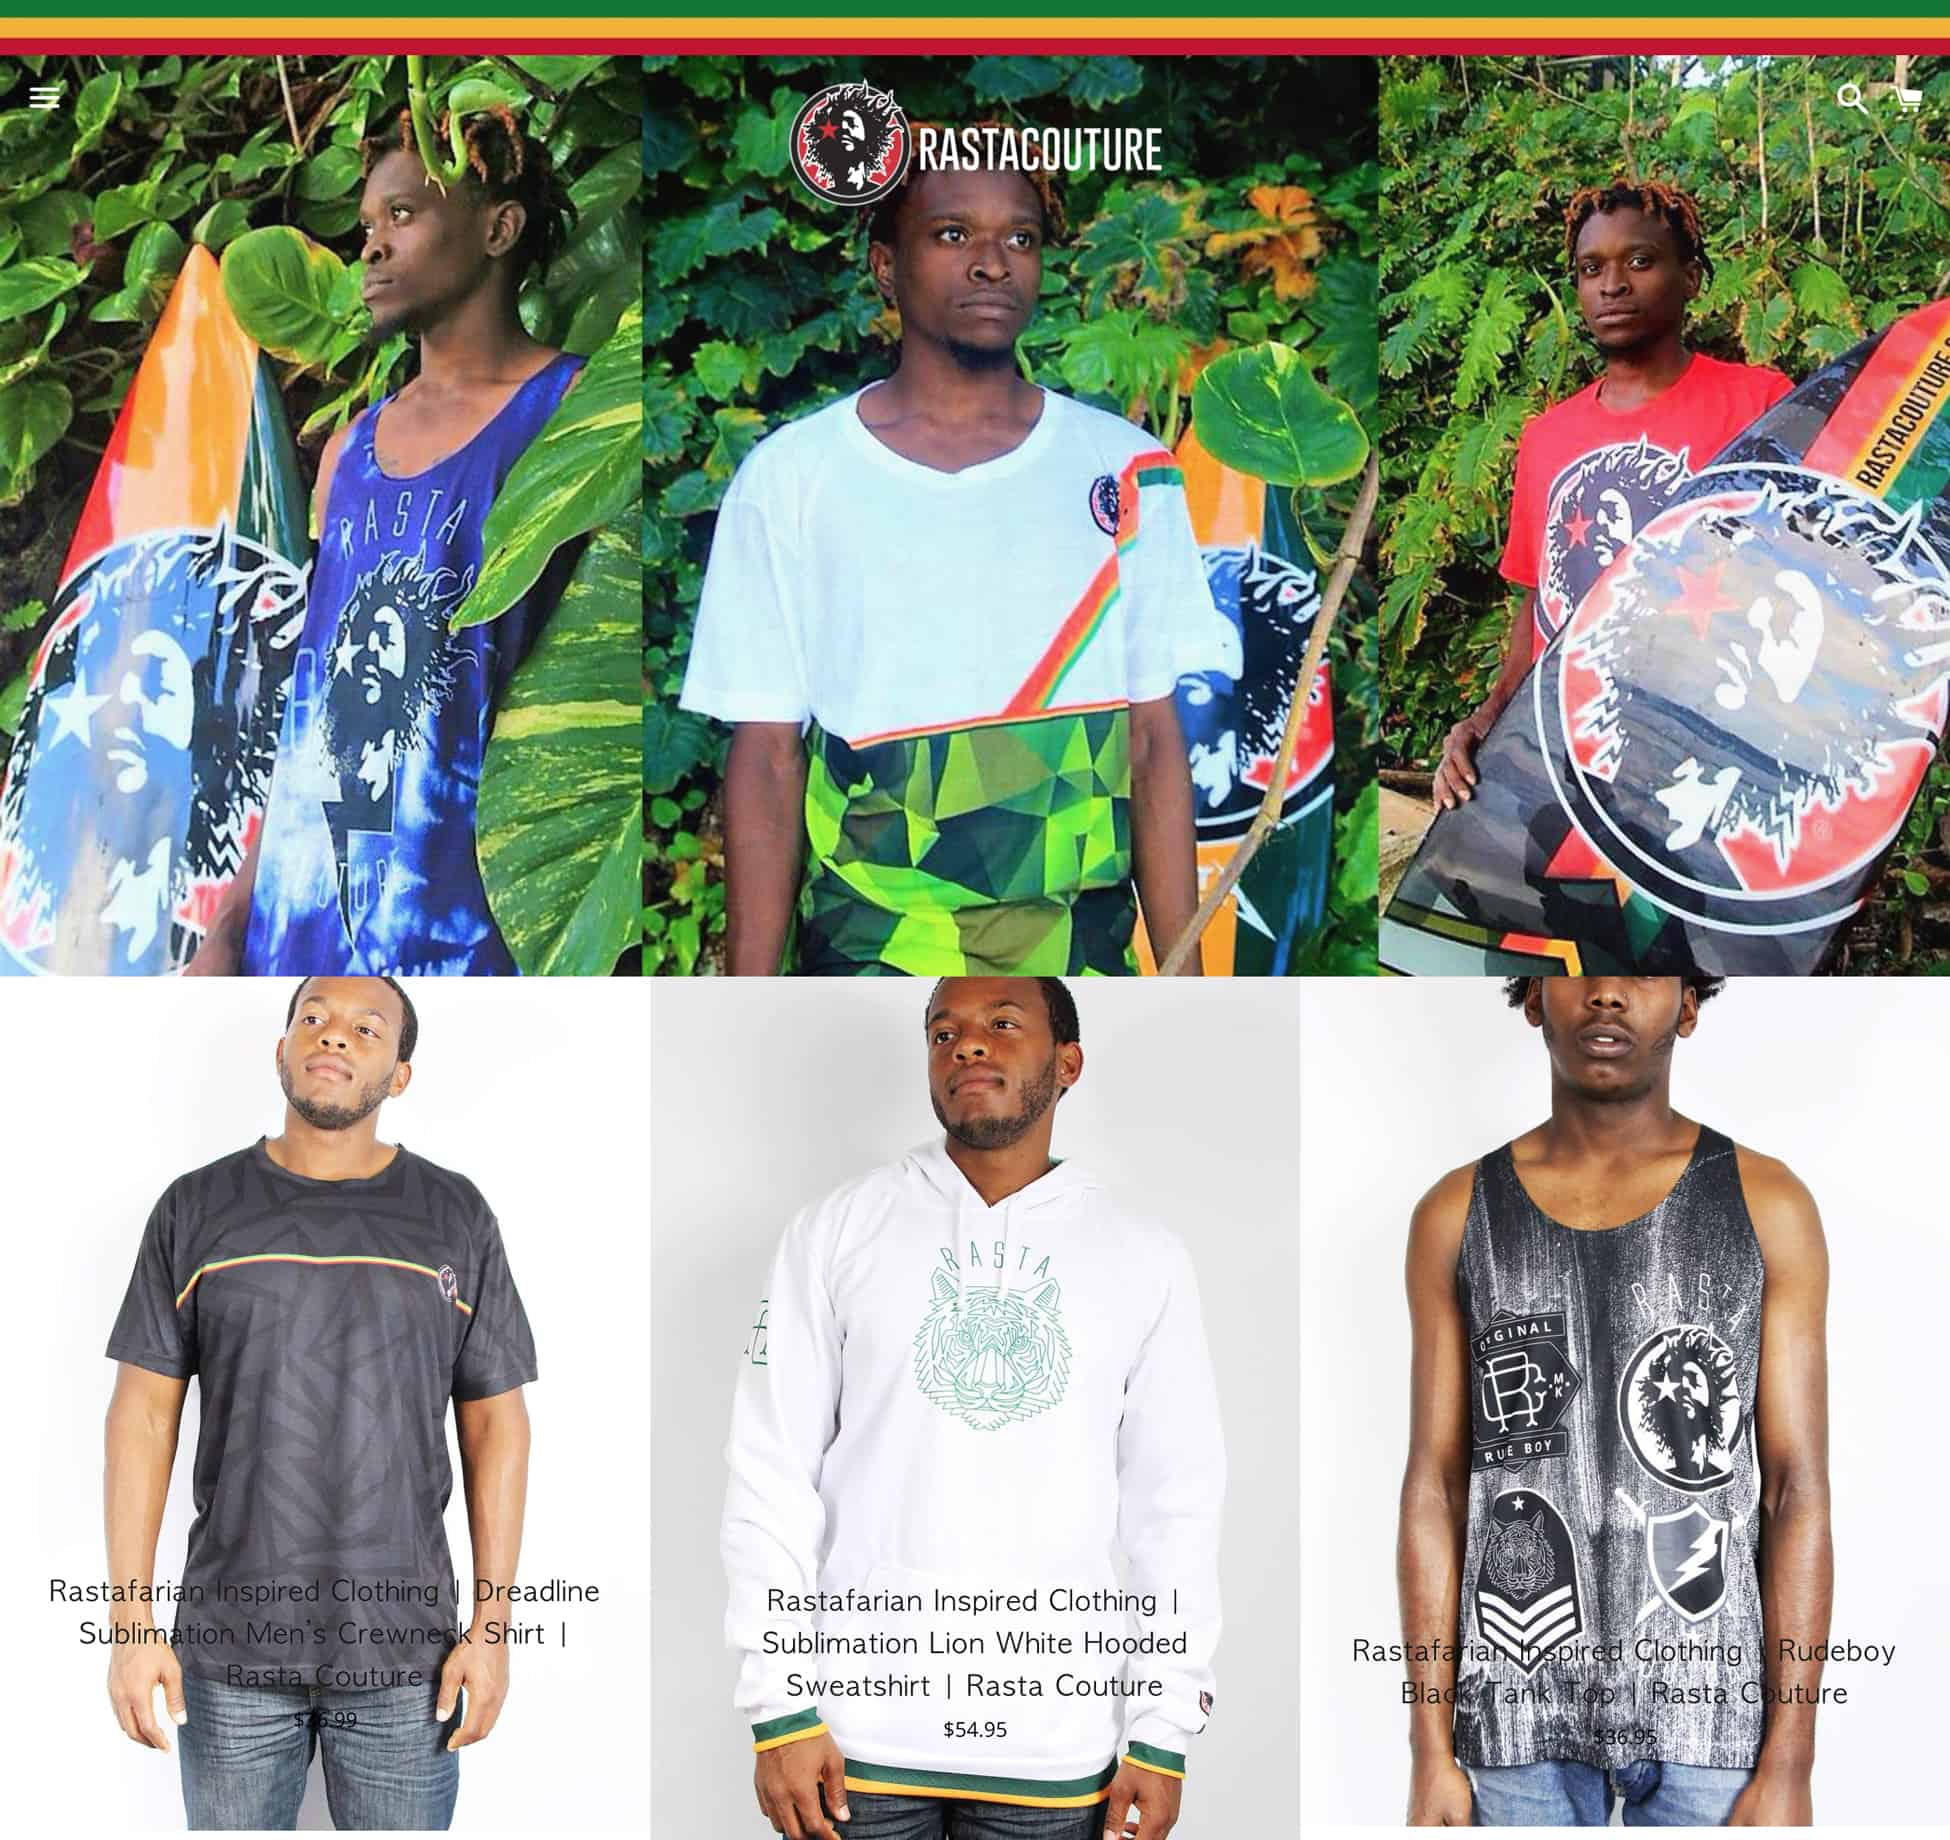 Rasta Couture Product Page